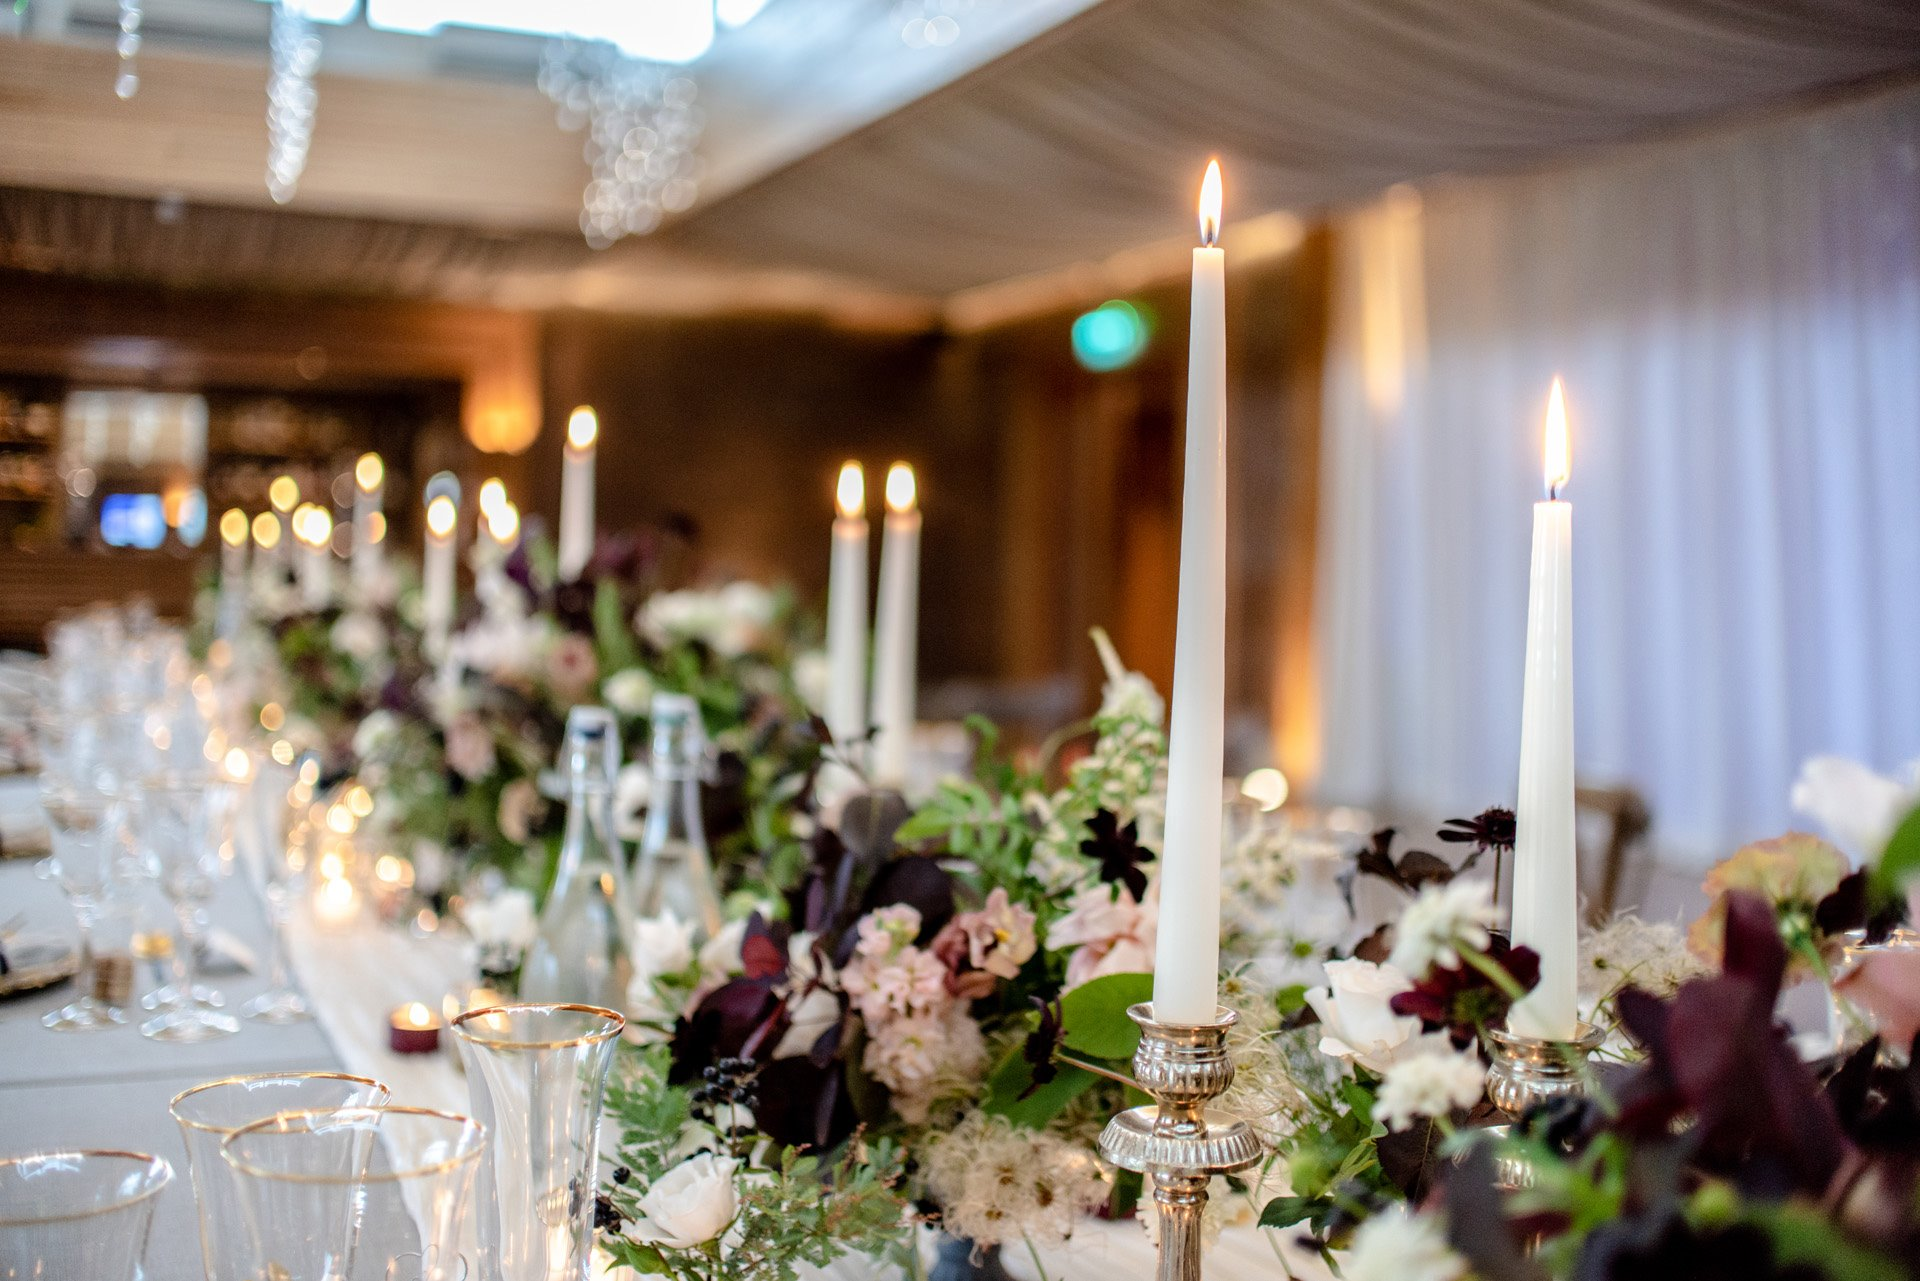 Candlelit micro wedding dinner table